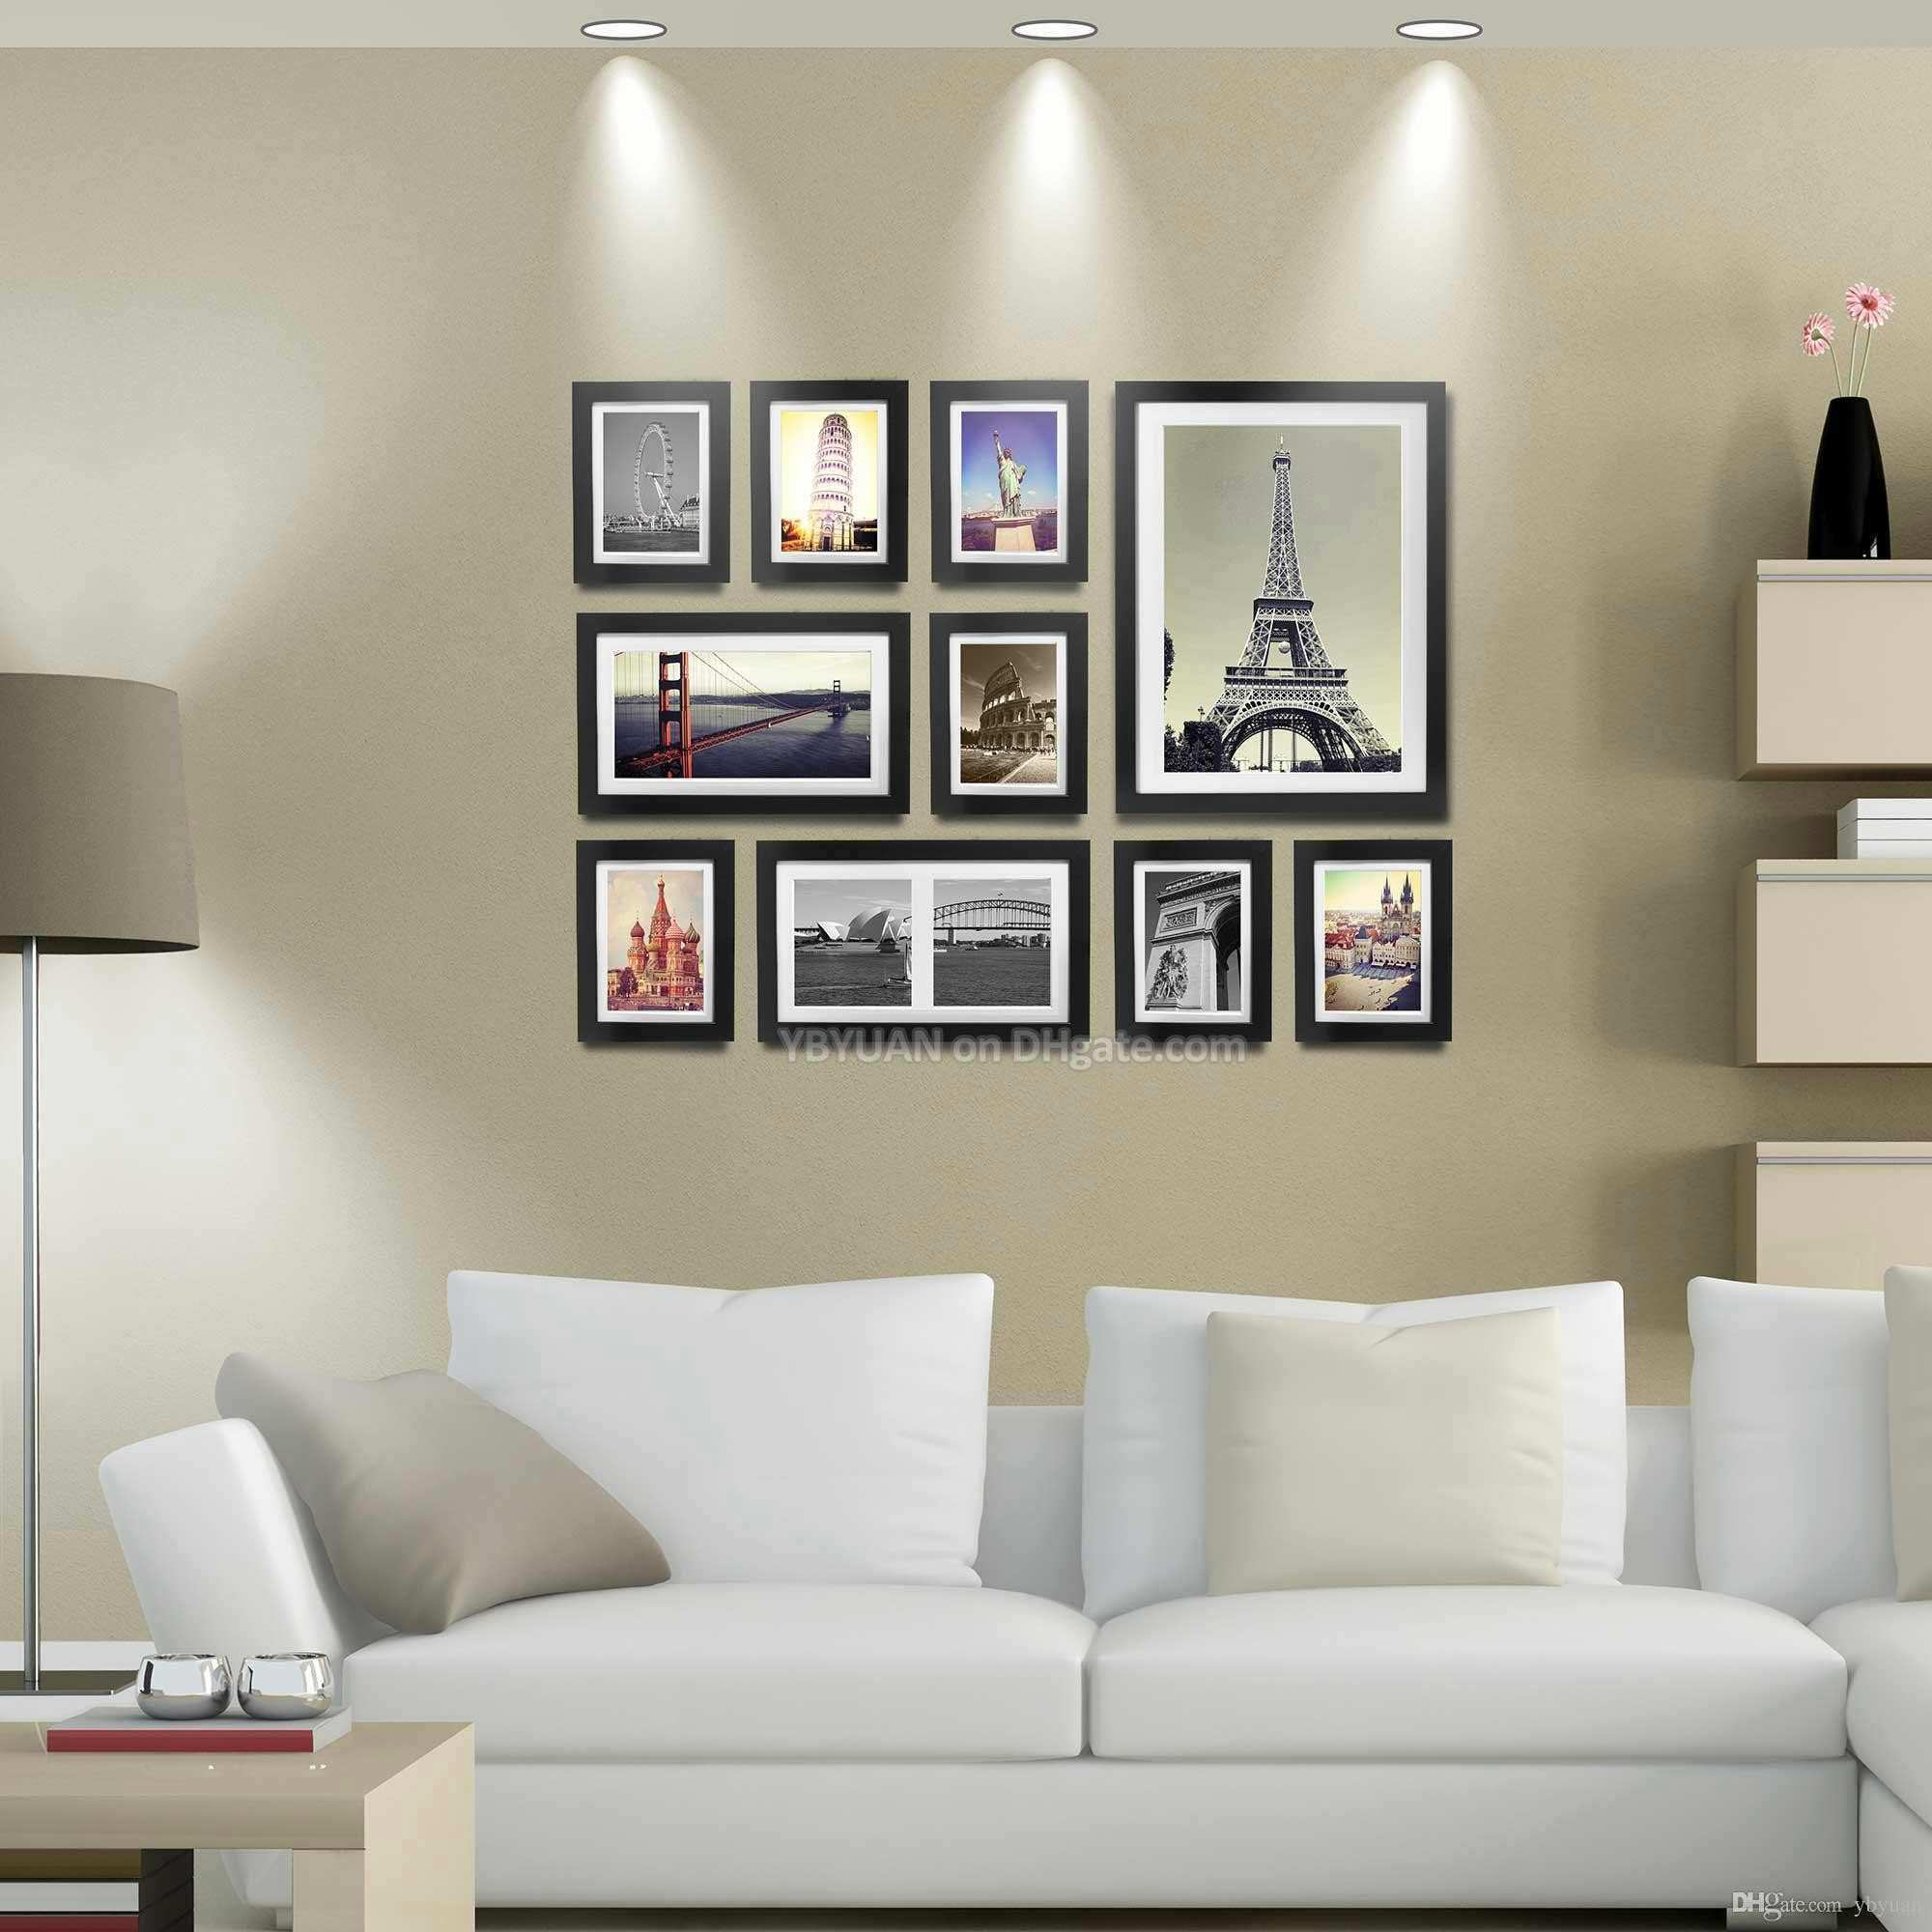 Wood Frame Gallery Wall Modern Style Flat Moulding Border